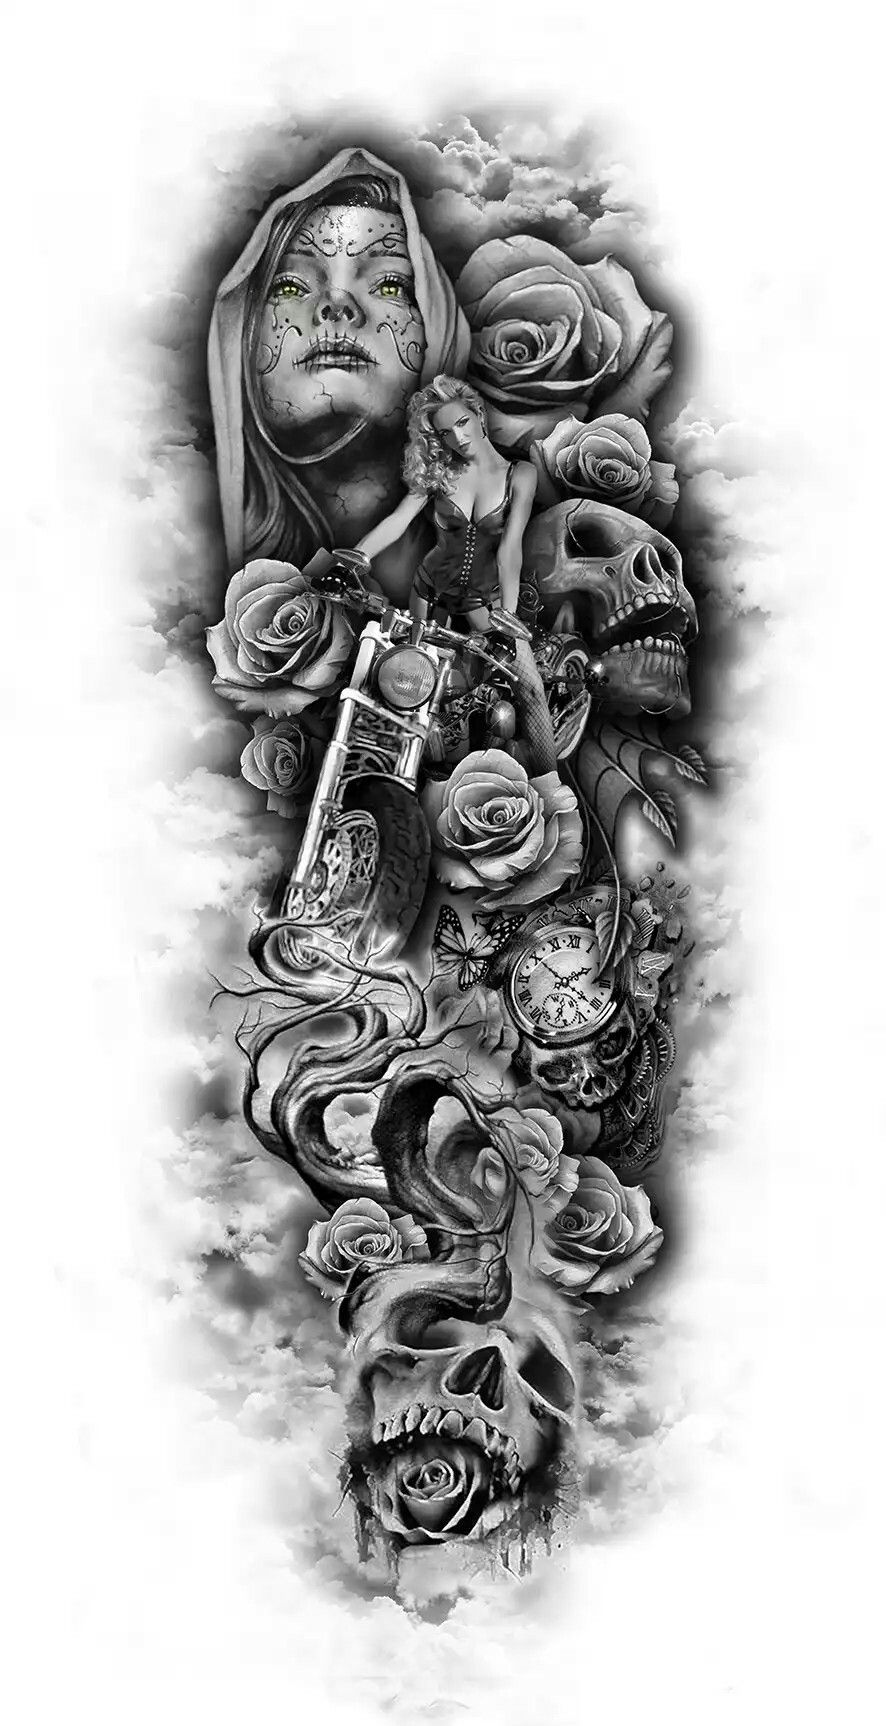 Tattoo Sleeve Sketches: Pin By Zombie Rus On Татуировки.